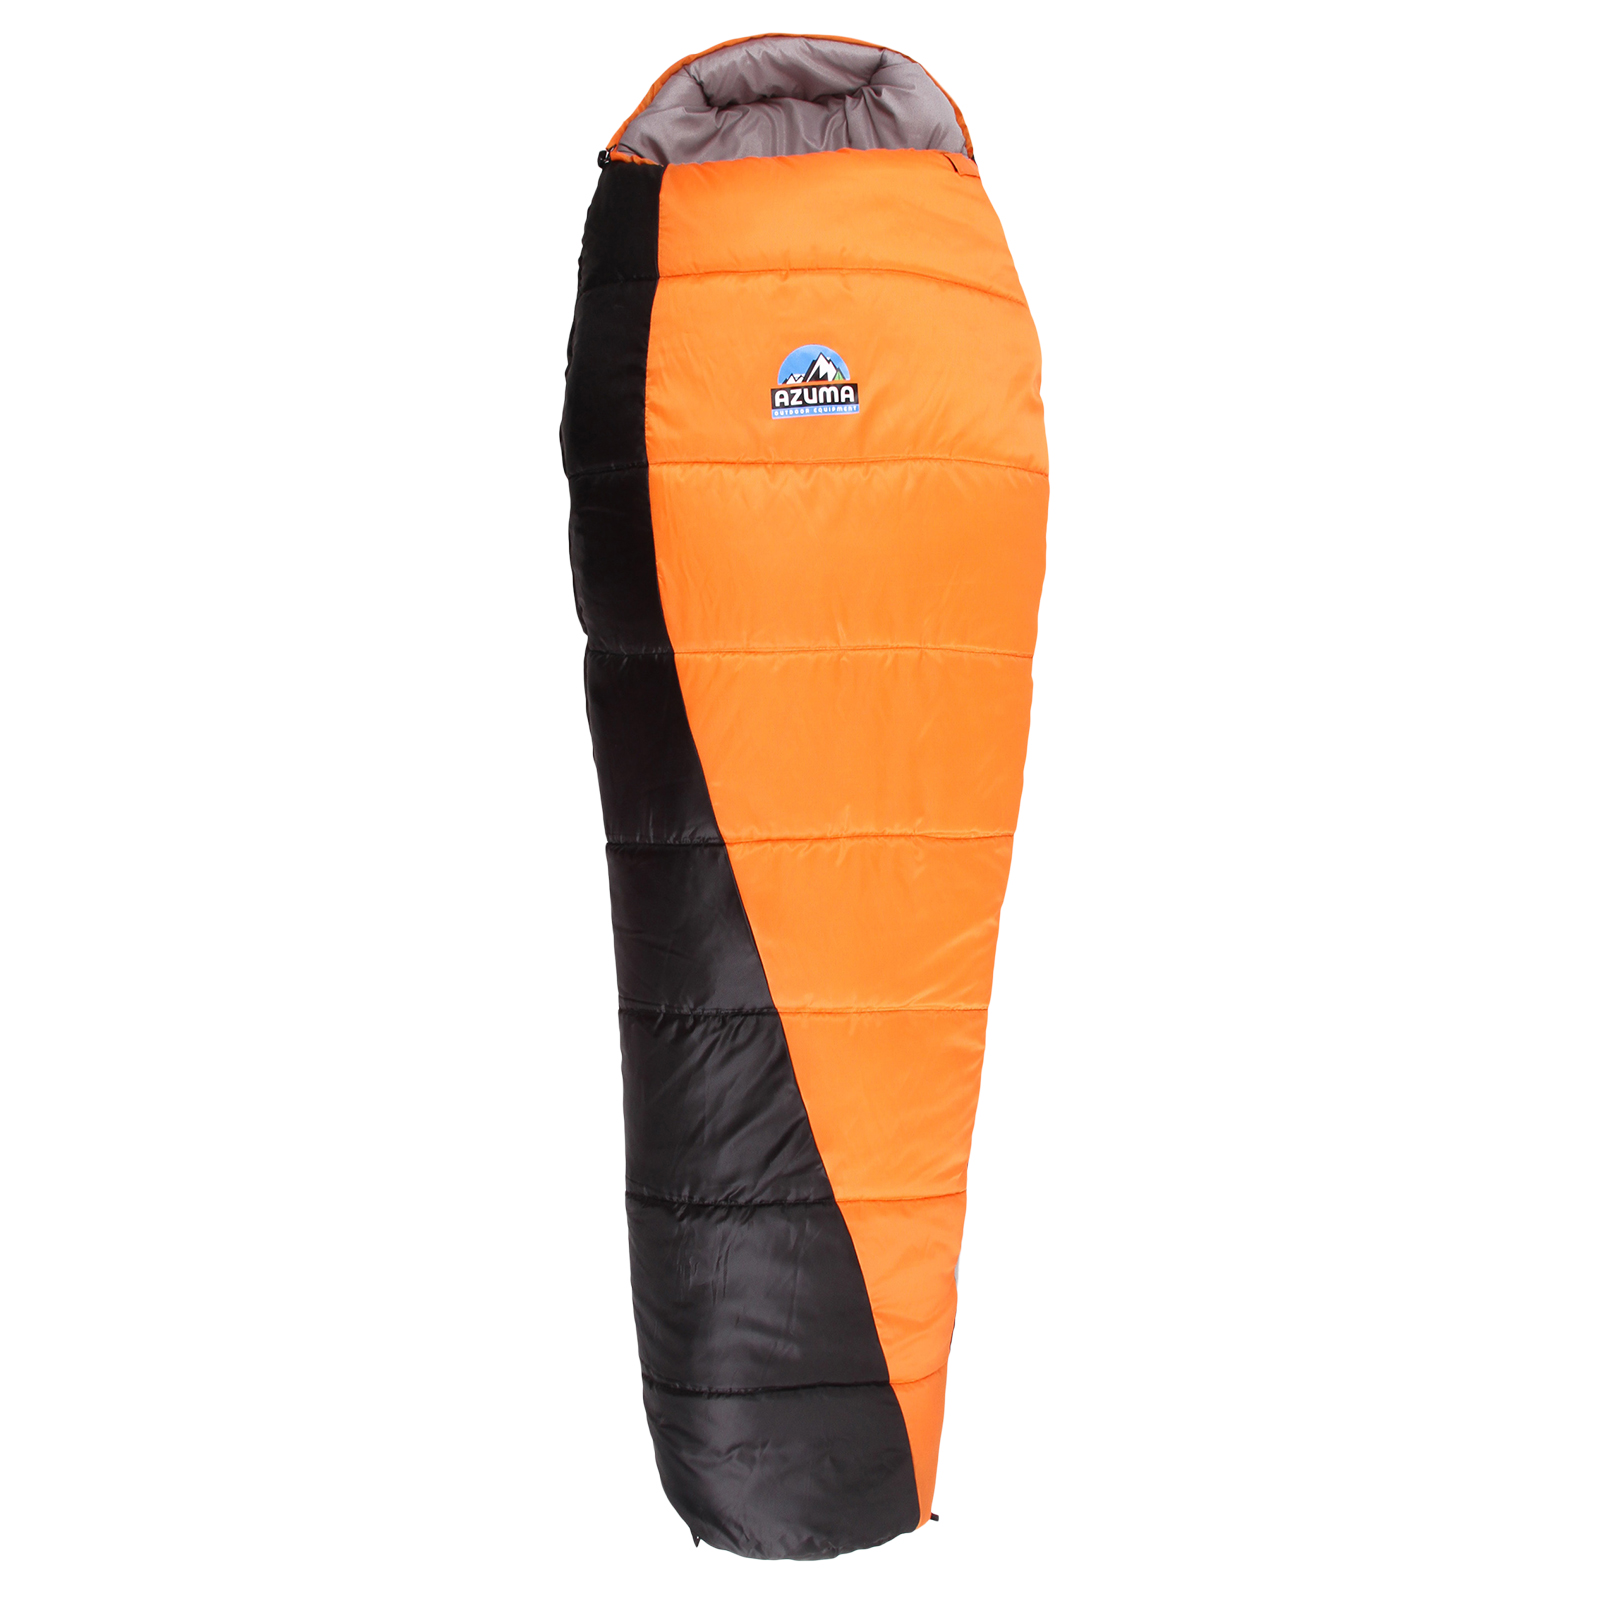 Azuma 7ft 3 Season Mummy Shape Sleeping Bag